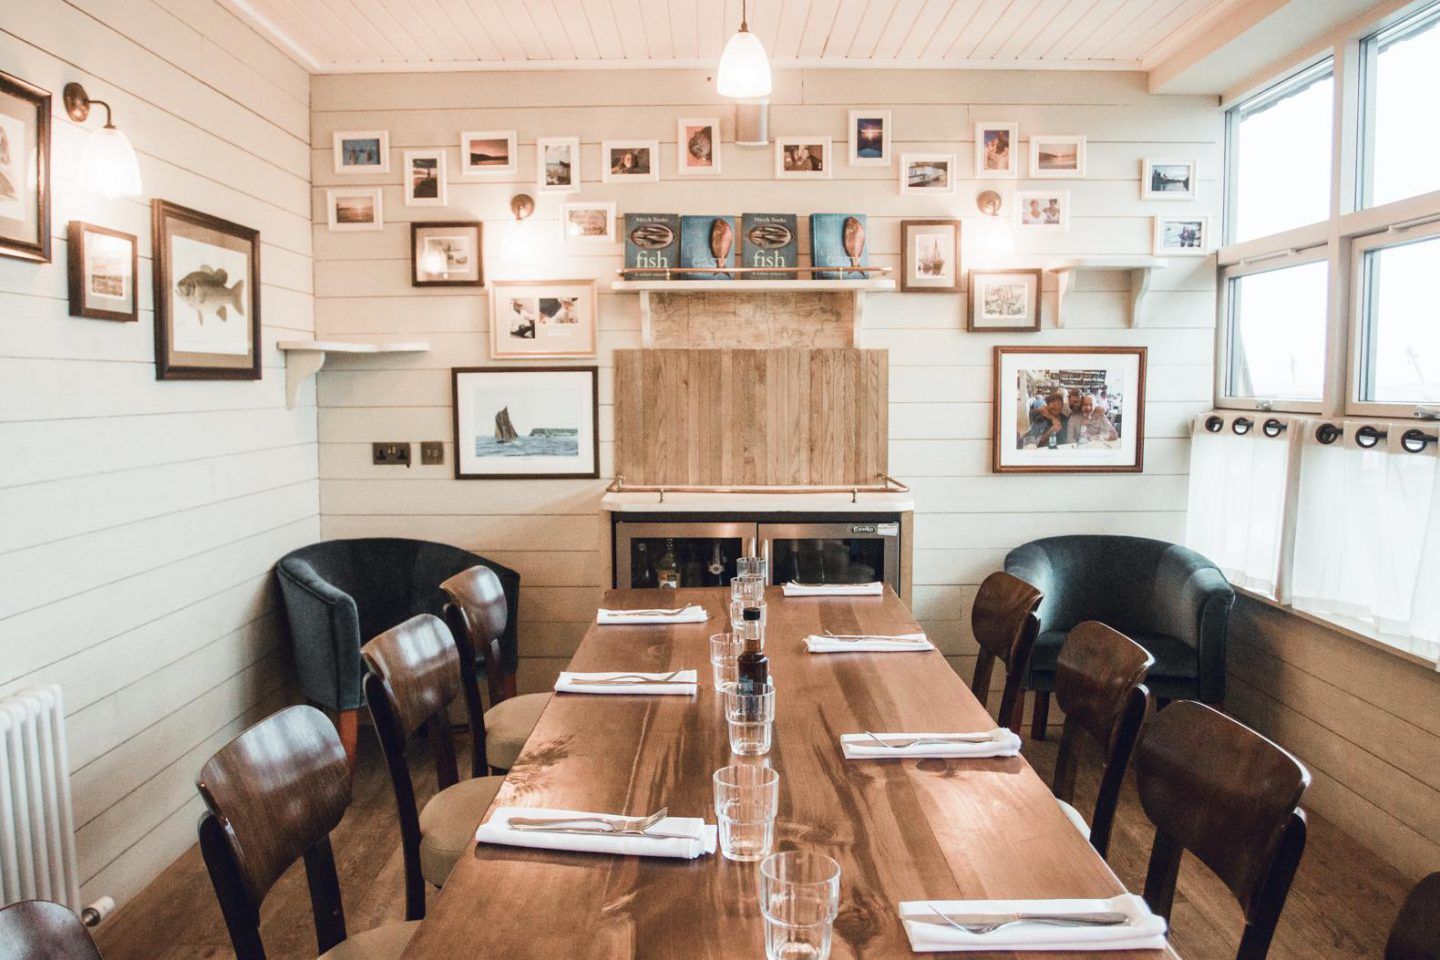 Rockfish Brixham: Fresh fish right in the heart of England's Seafood Coast